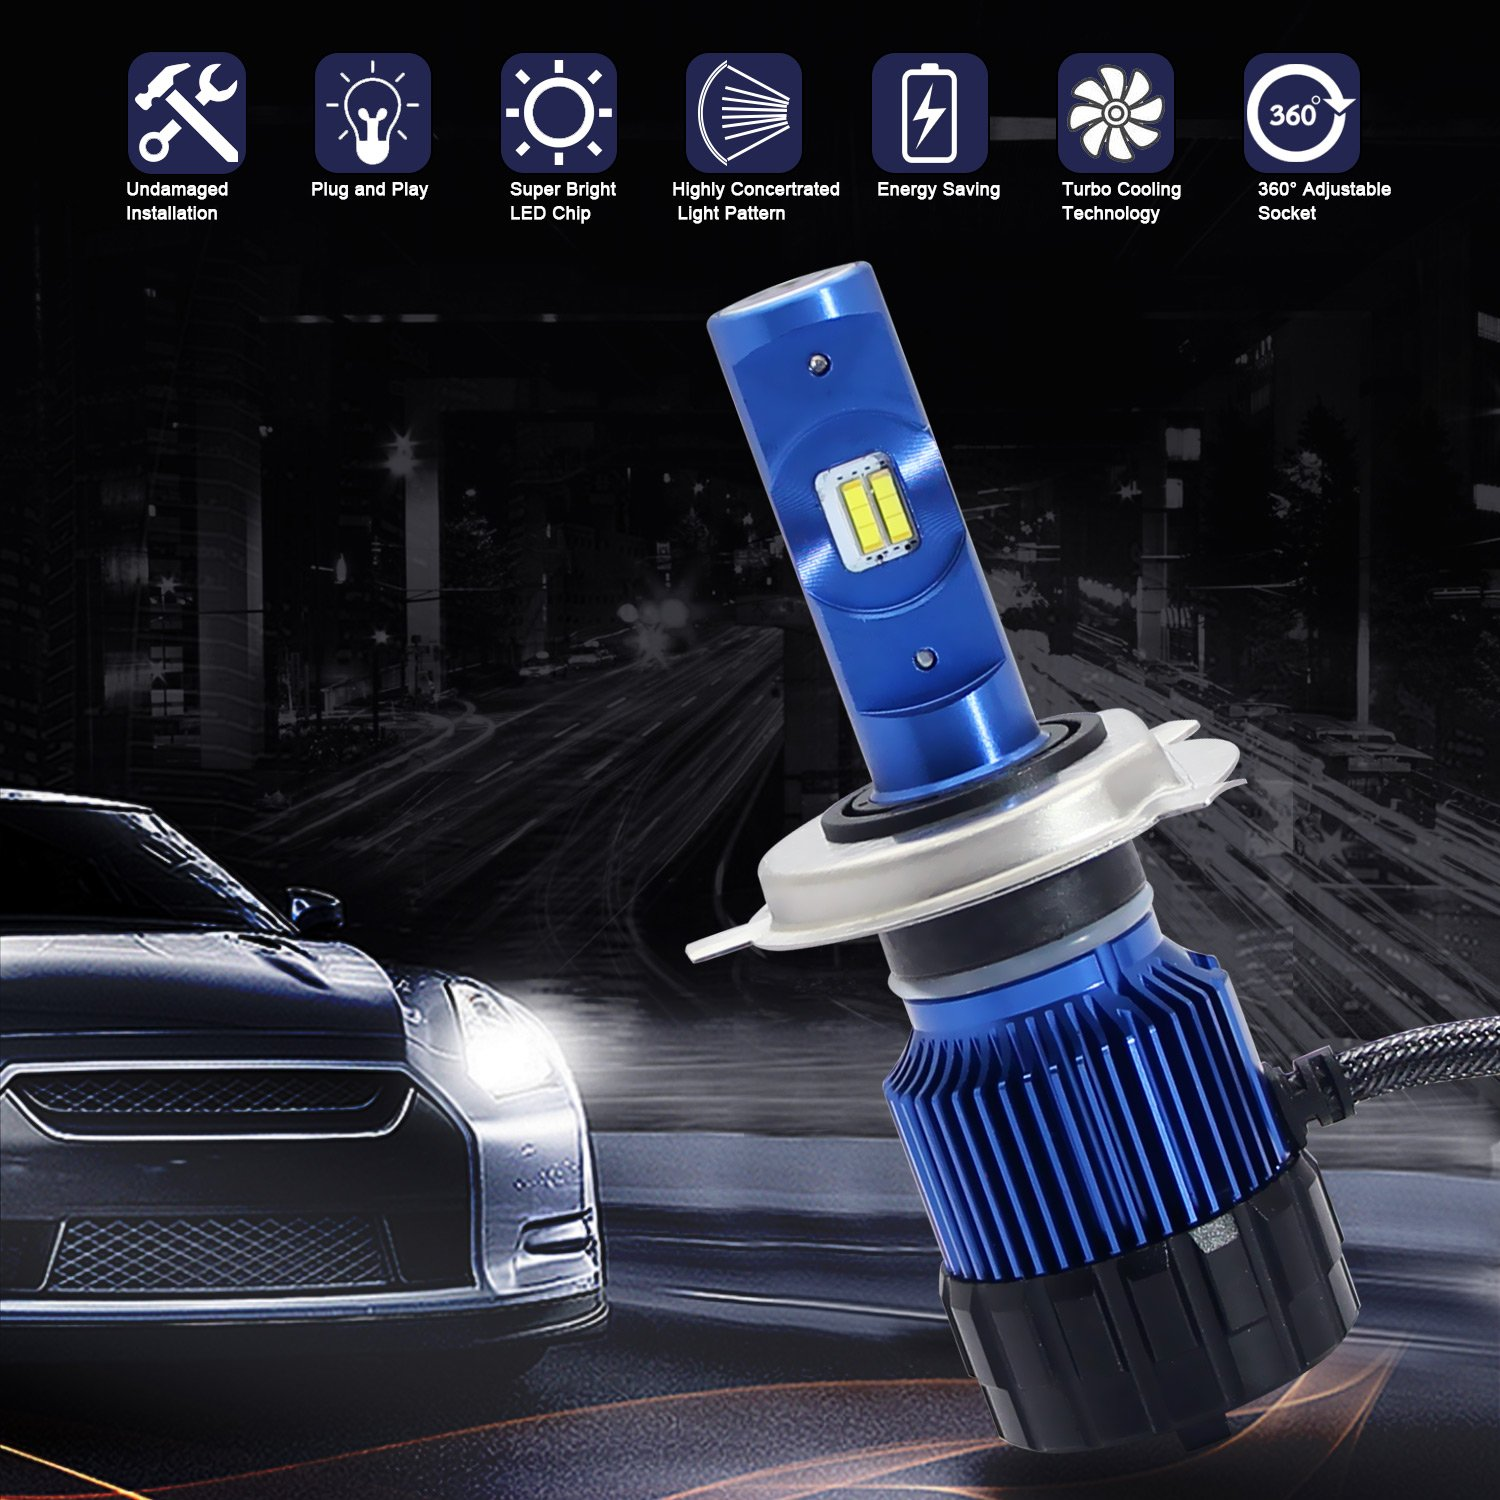 Win Power 9005//HB3 LED Headlight Bulbs All-in-One Conversion Kit-8,000Lm 6000K Cool White CSP High Beam Bulb-2 Yr Warranty 4333022189